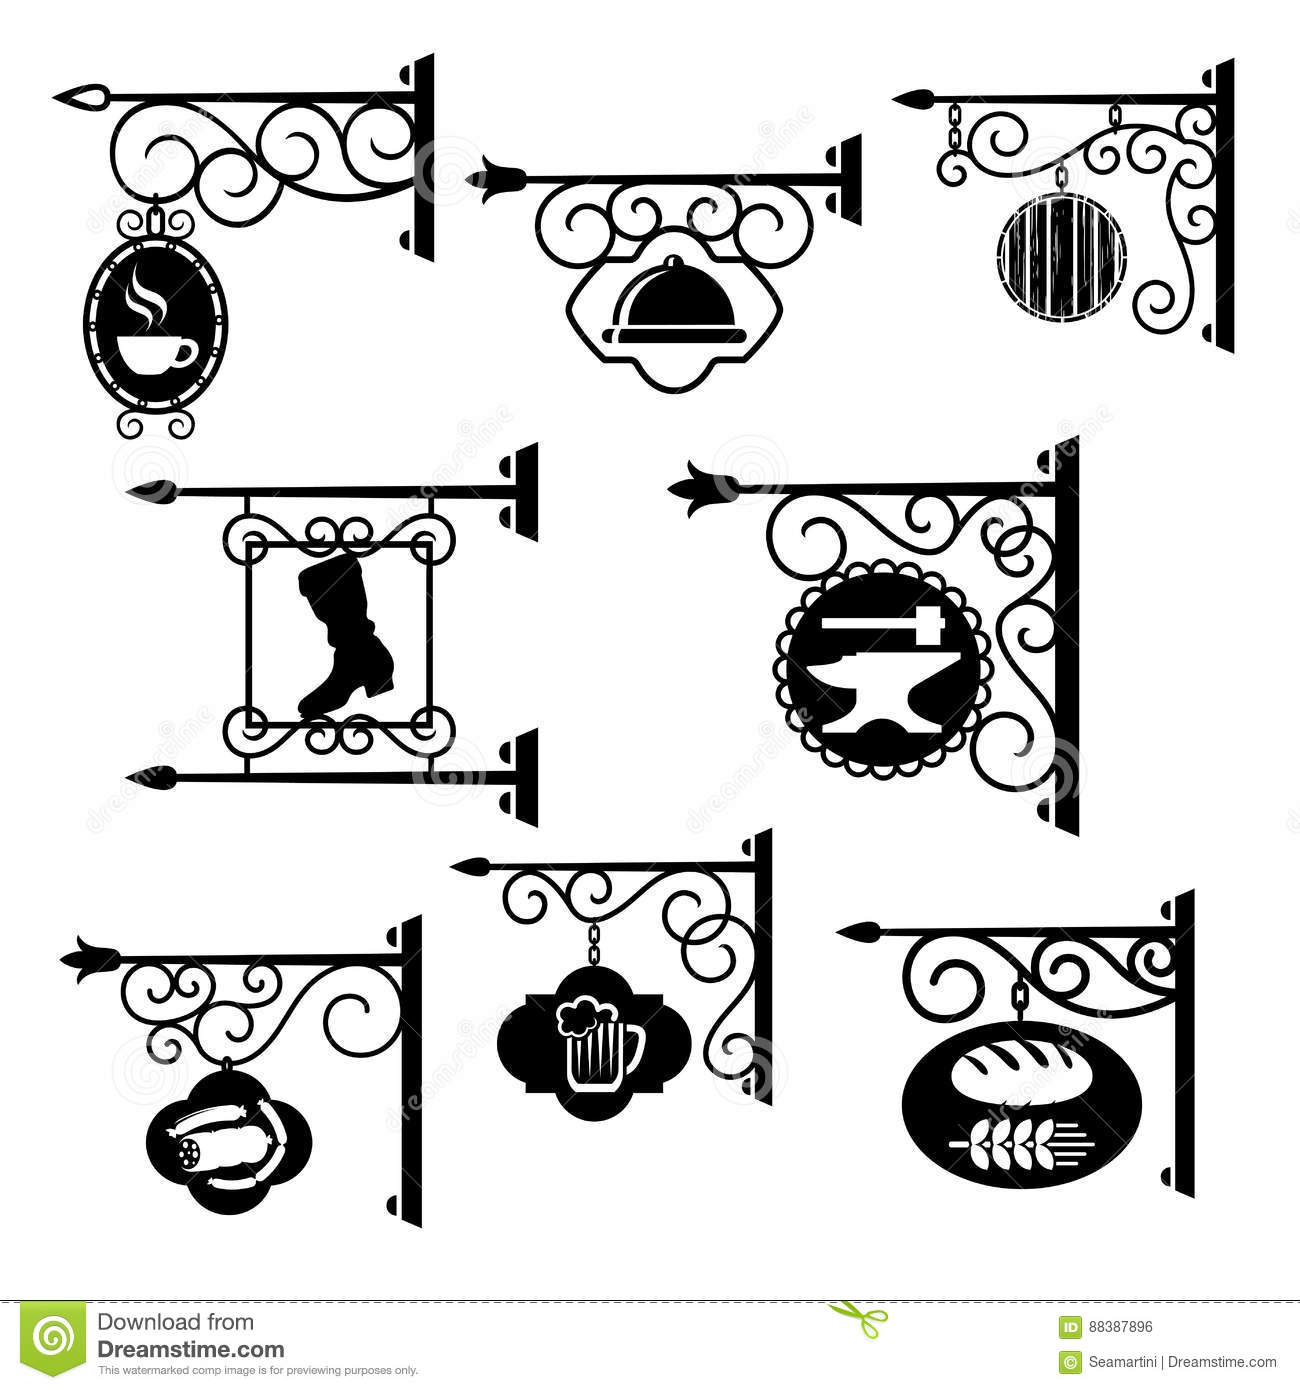 Shop and workshop metal forged signs vector icons stock vector royalty free vector download m4hsunfo Gallery